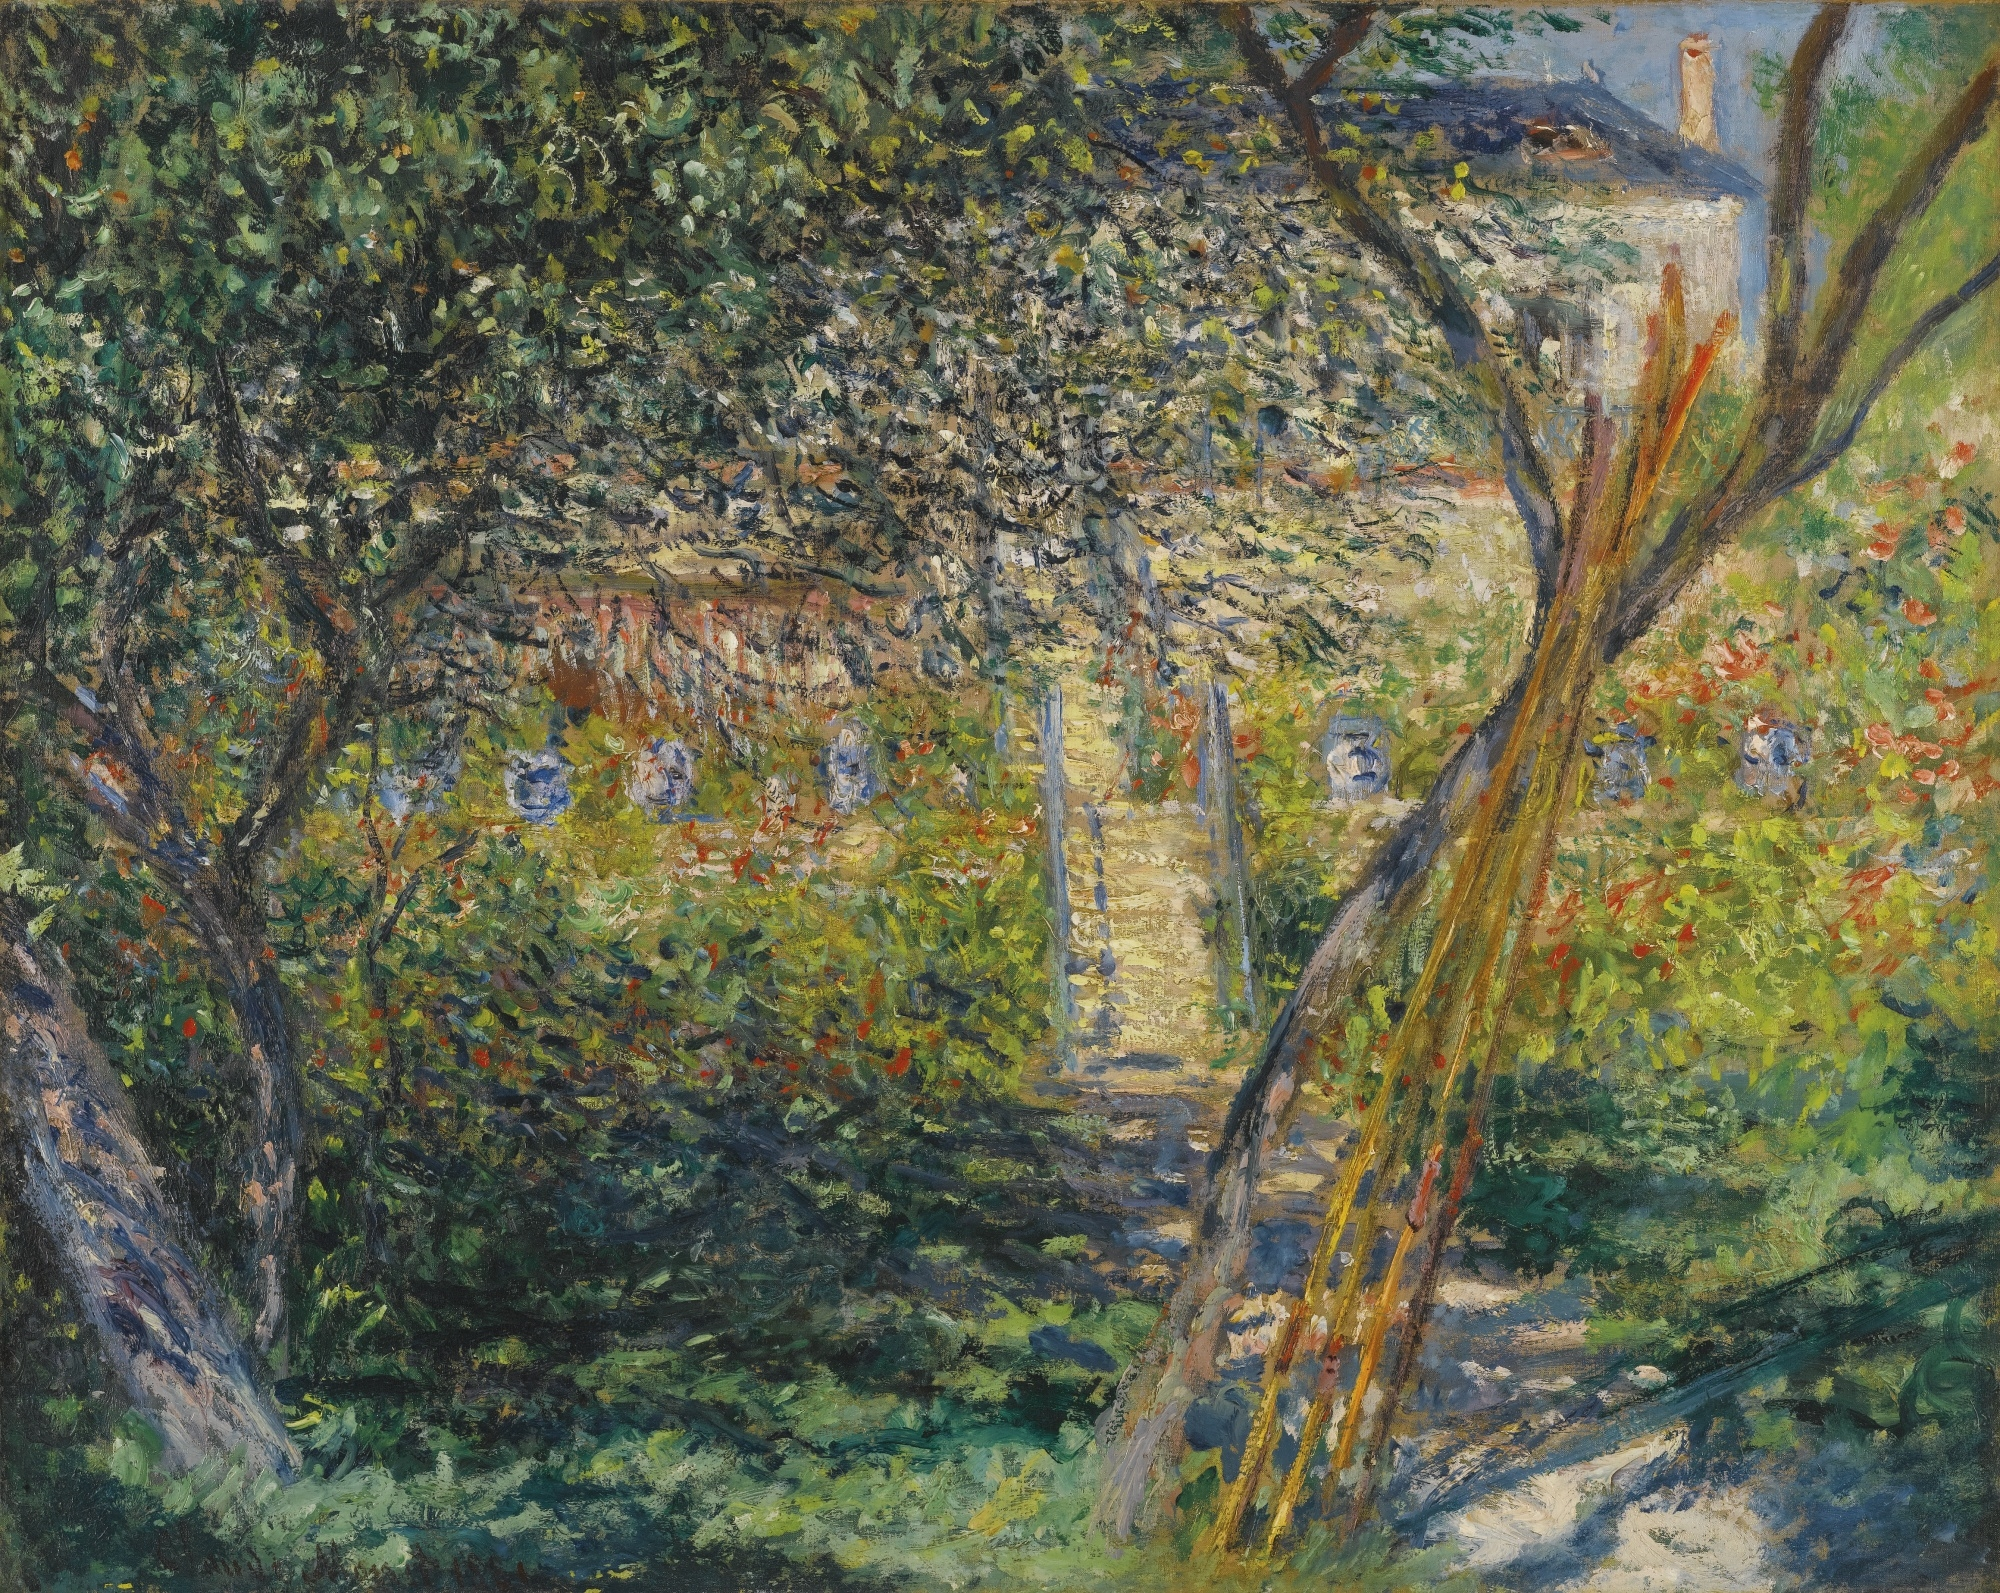 artwork by claude monet le jardin de v theuil made of oil on canvas. Black Bedroom Furniture Sets. Home Design Ideas